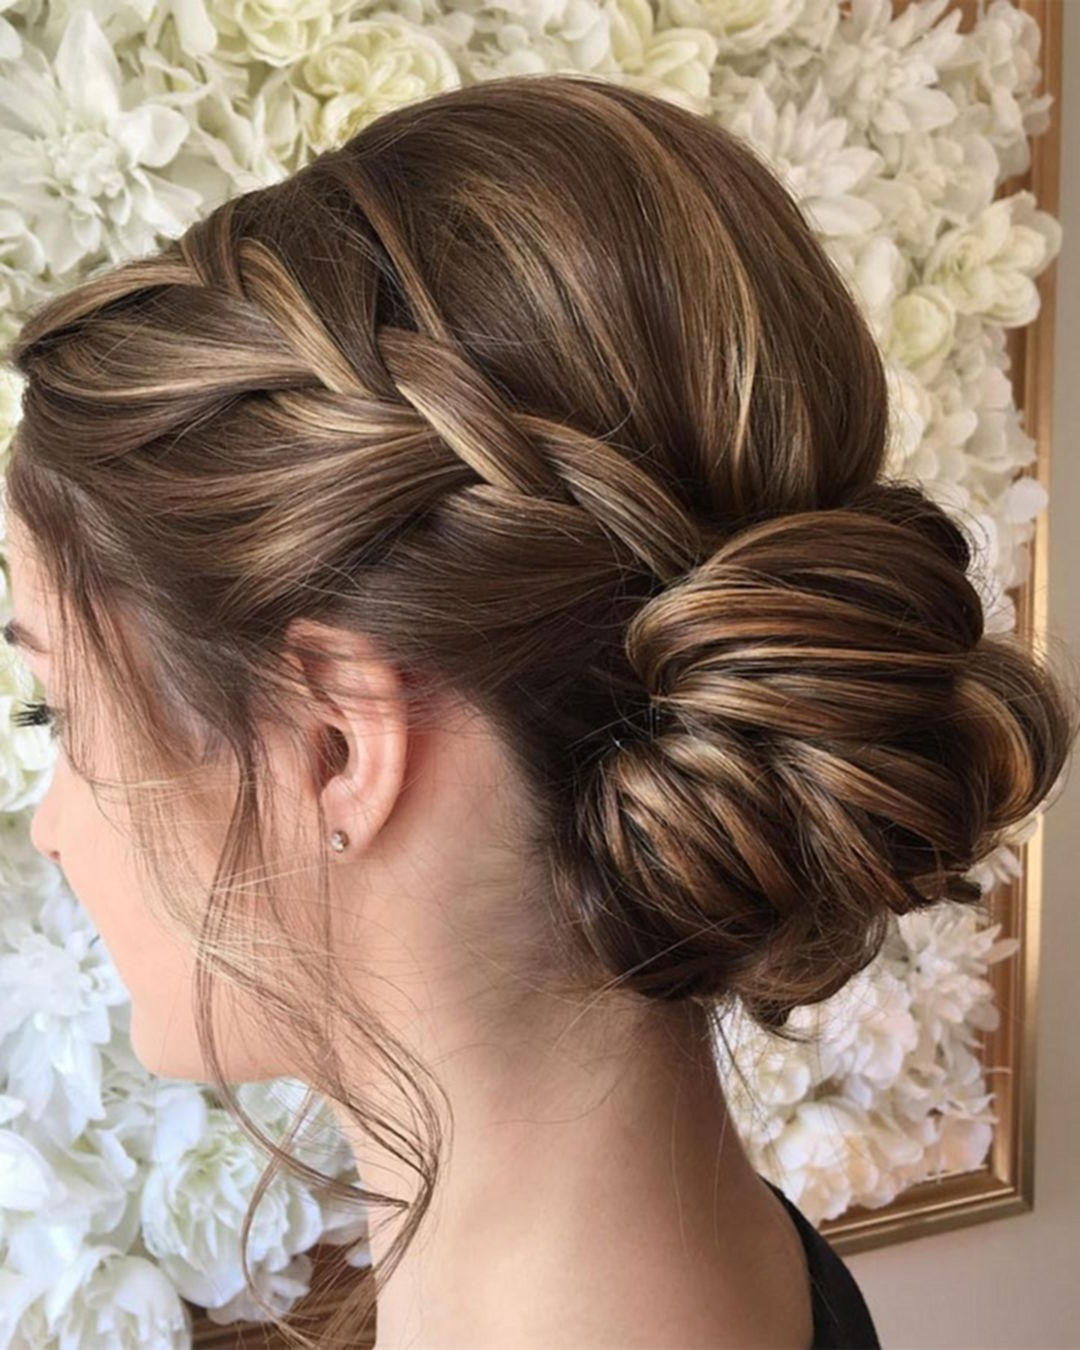 Cool 60+ Wonderful Bridesmaid Updo Hairstyles Https://oosile/60 For Long Hair Updo Hairstyles For Over  (View 4 of 15)